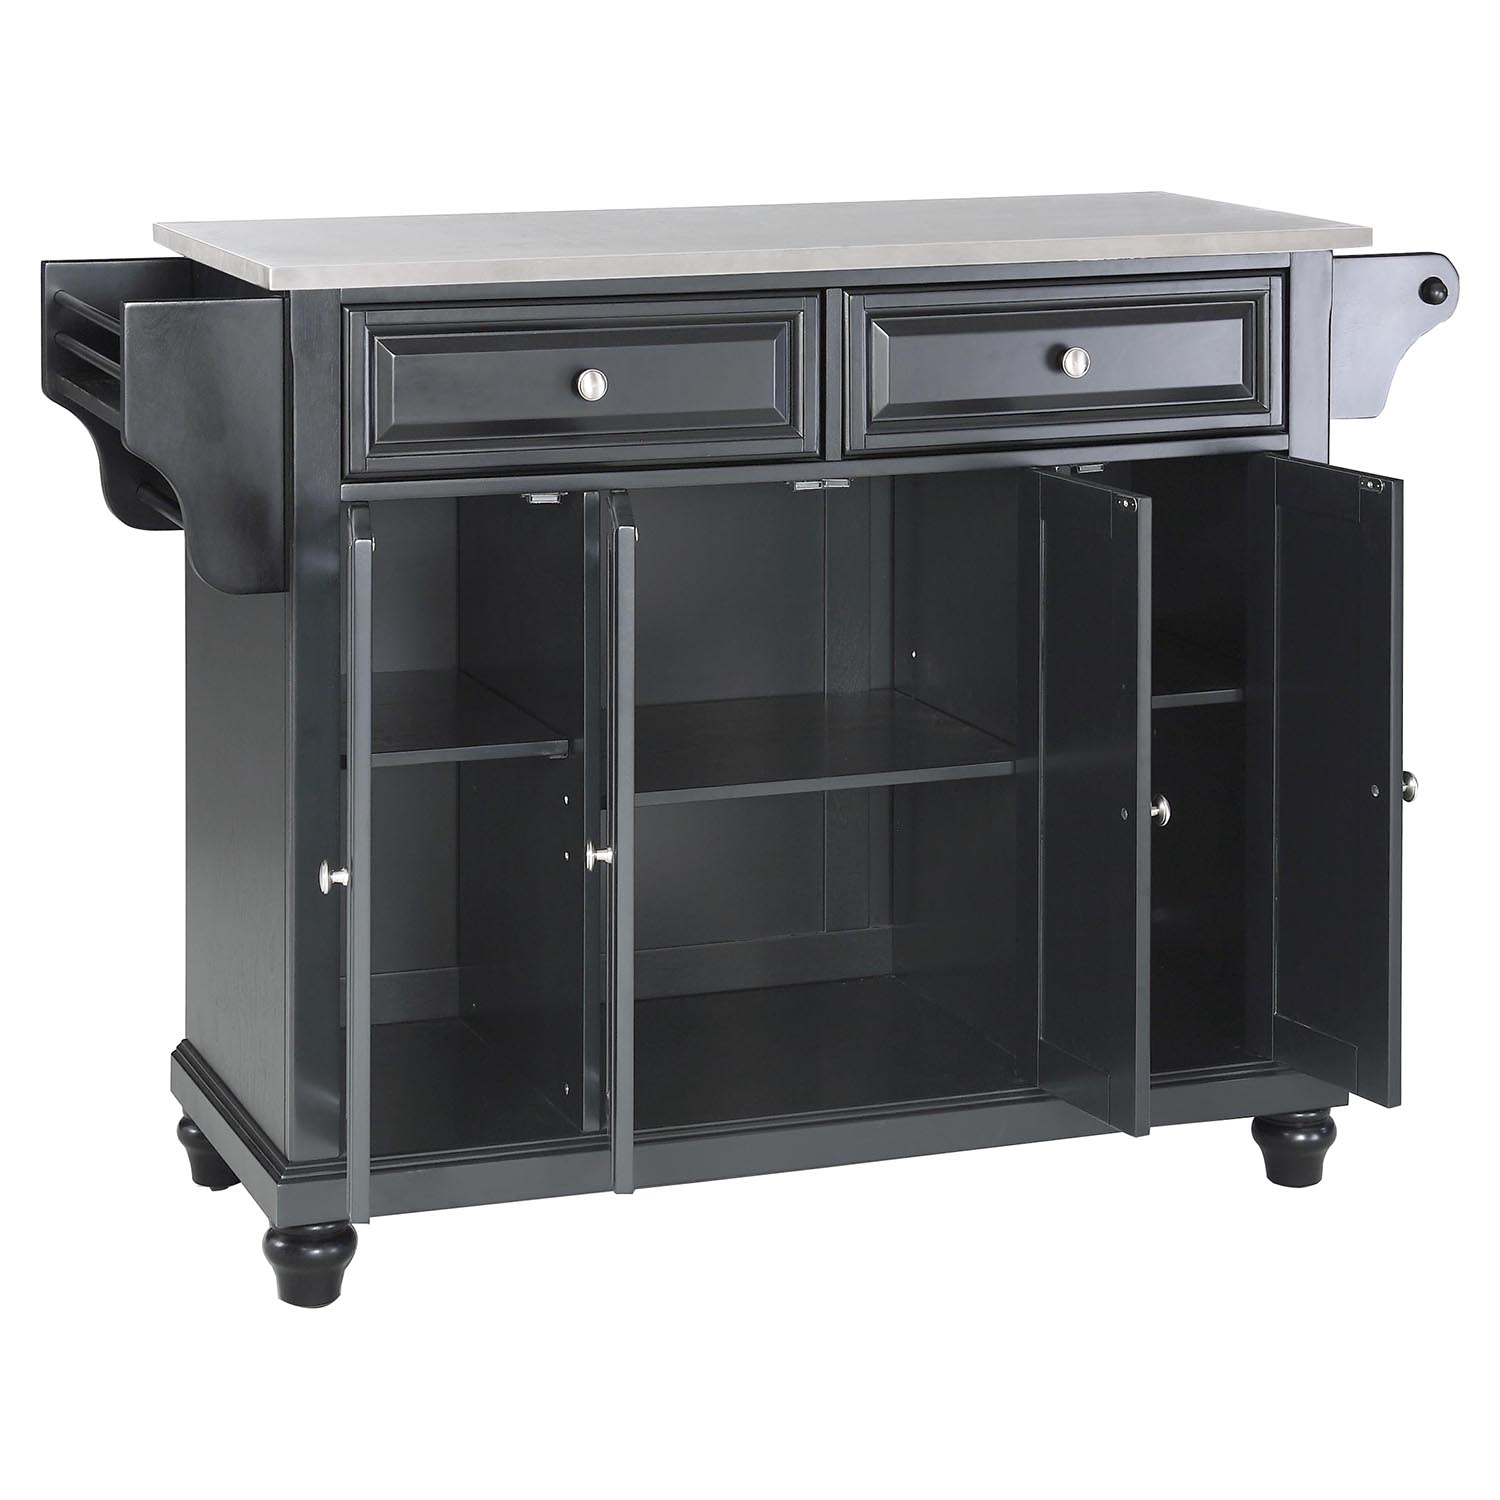 Cambridge Stainless Steel Top Kitchen Island Black Dcg